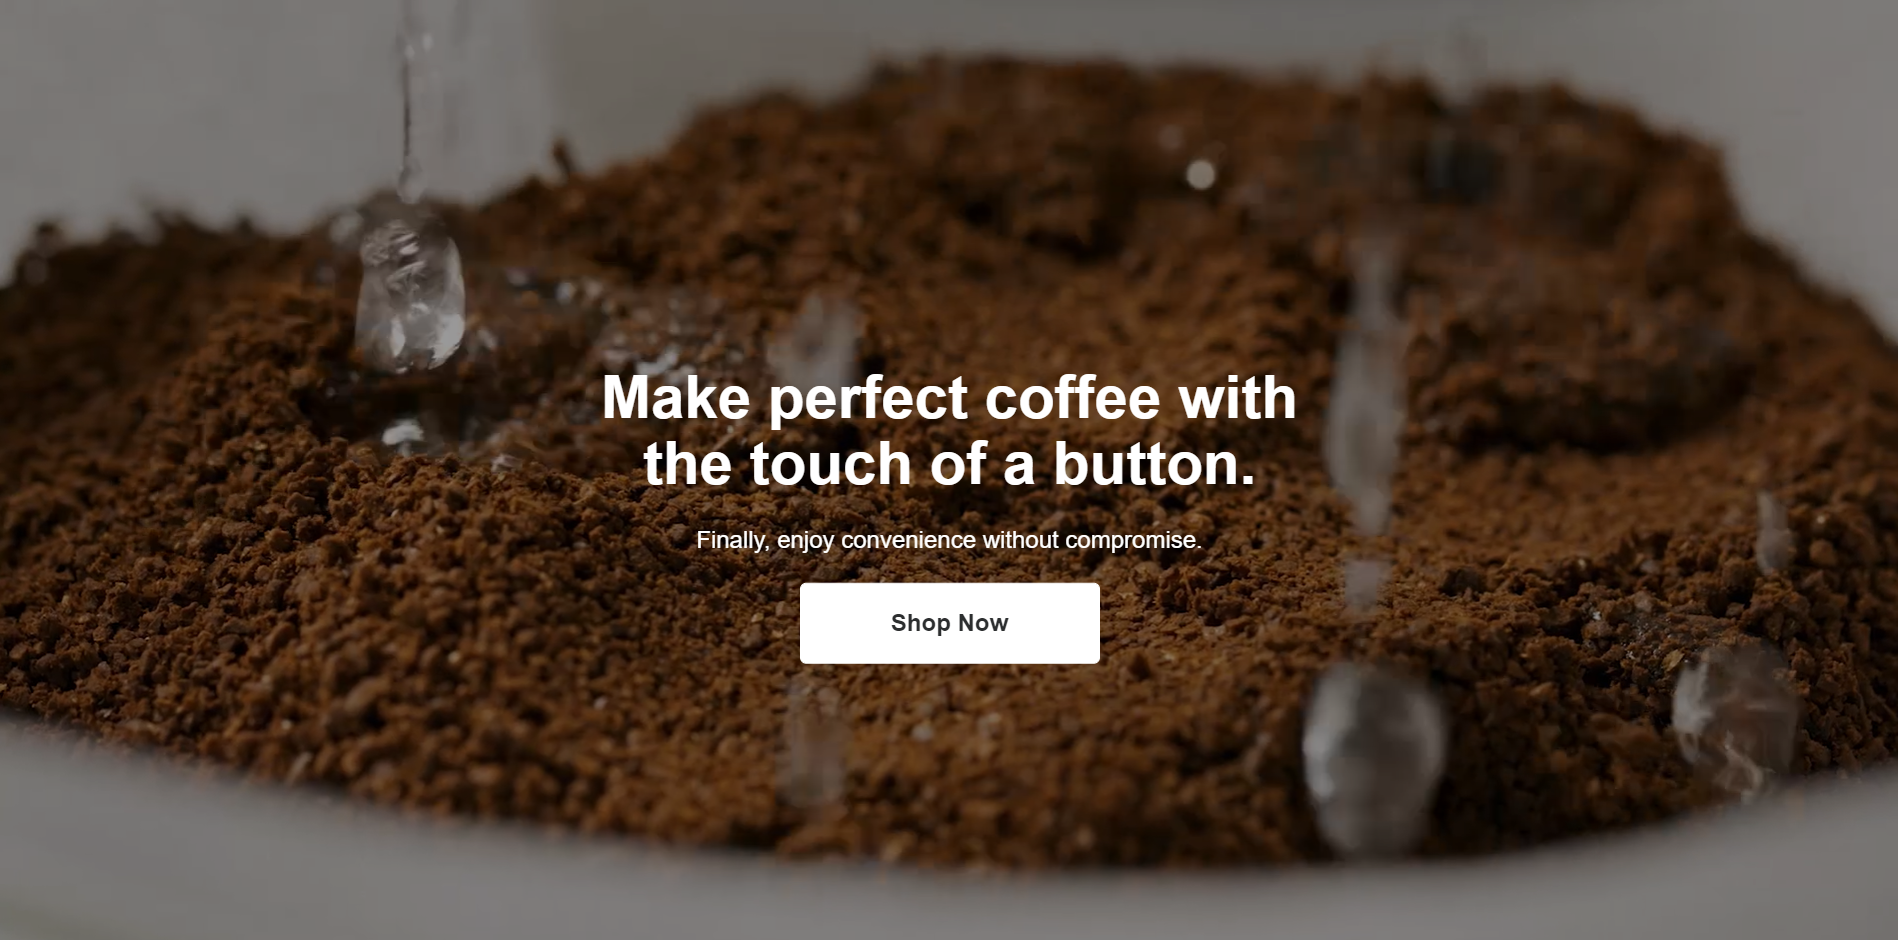 The third example of a great landing page